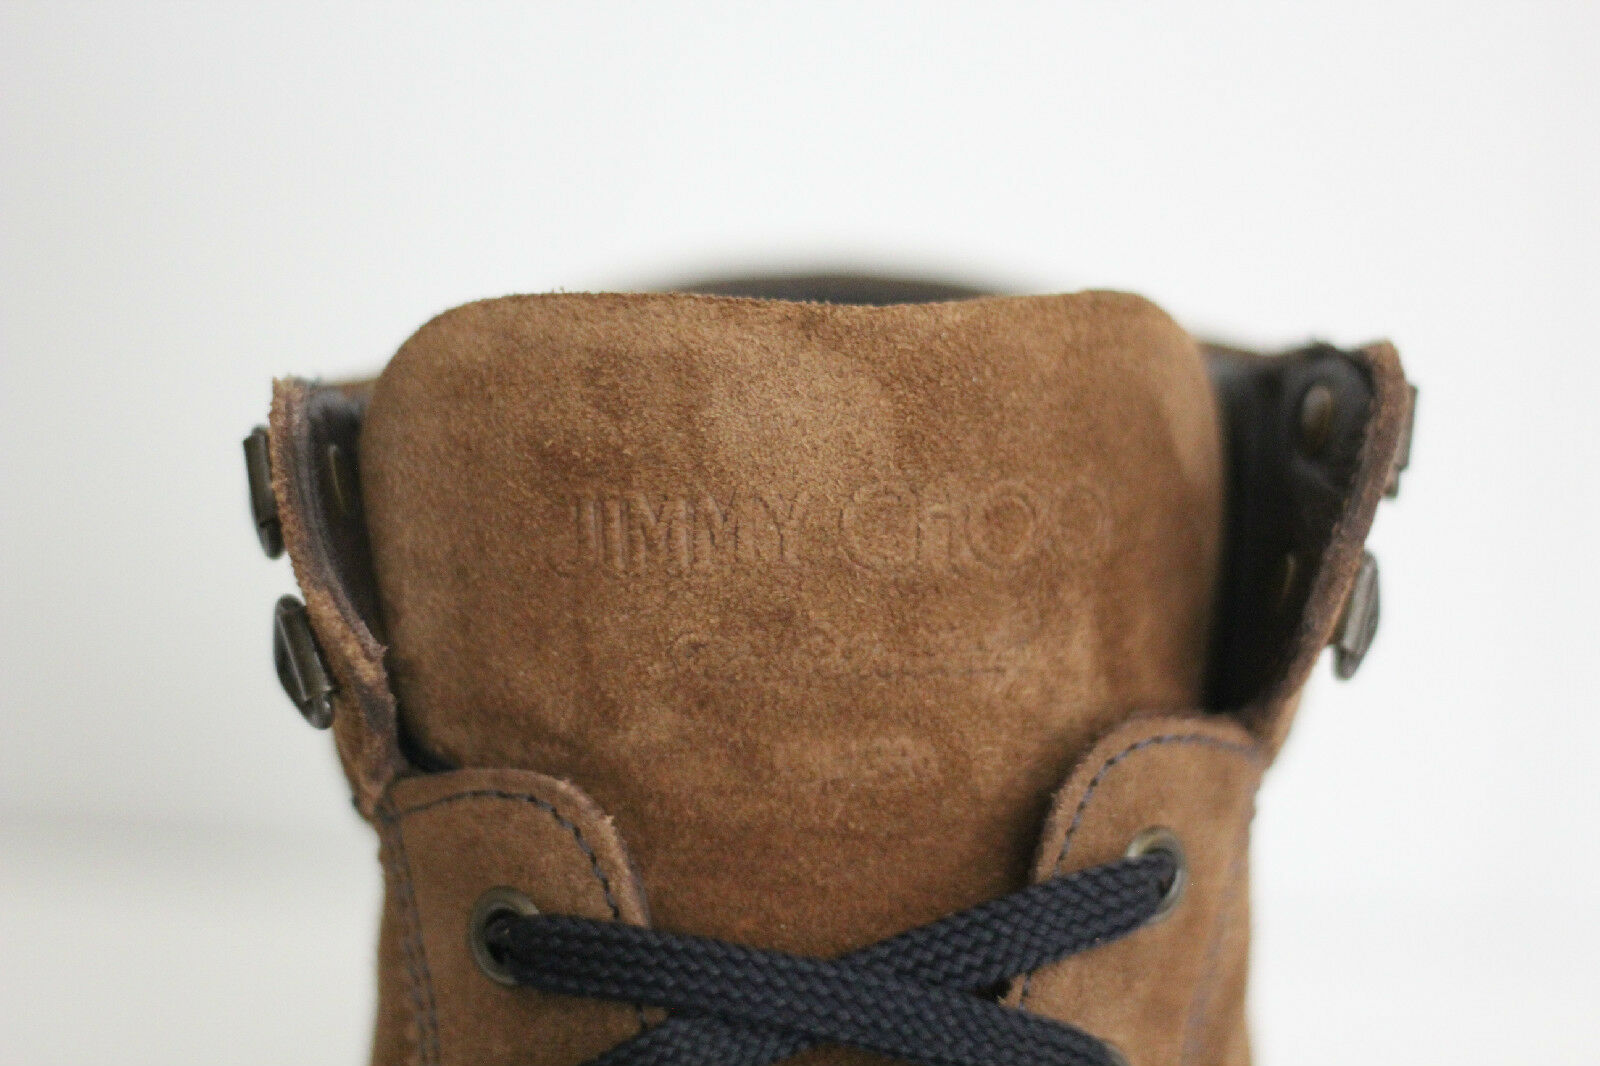 68d847a5544 ... Jimmy Choo  Argyle  High Top Sneakers - - - Brown Suede - Size 45EU ...